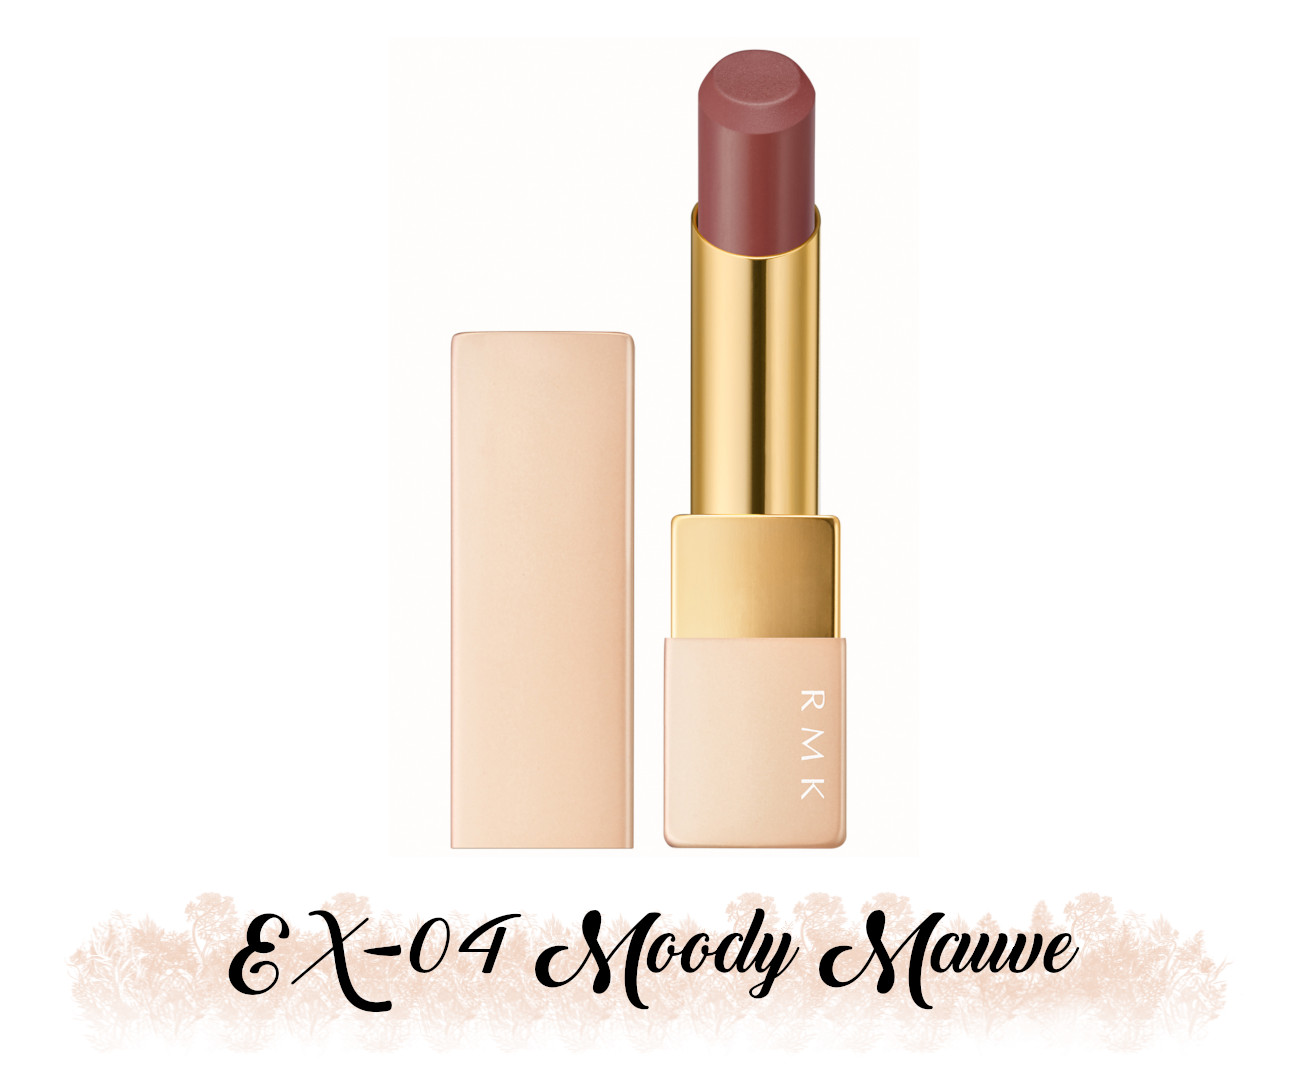 RMK Fall 2021 Collection Rosewood Daydream Lipstick Comfort Airy Shine EX-04 Moody Mauve